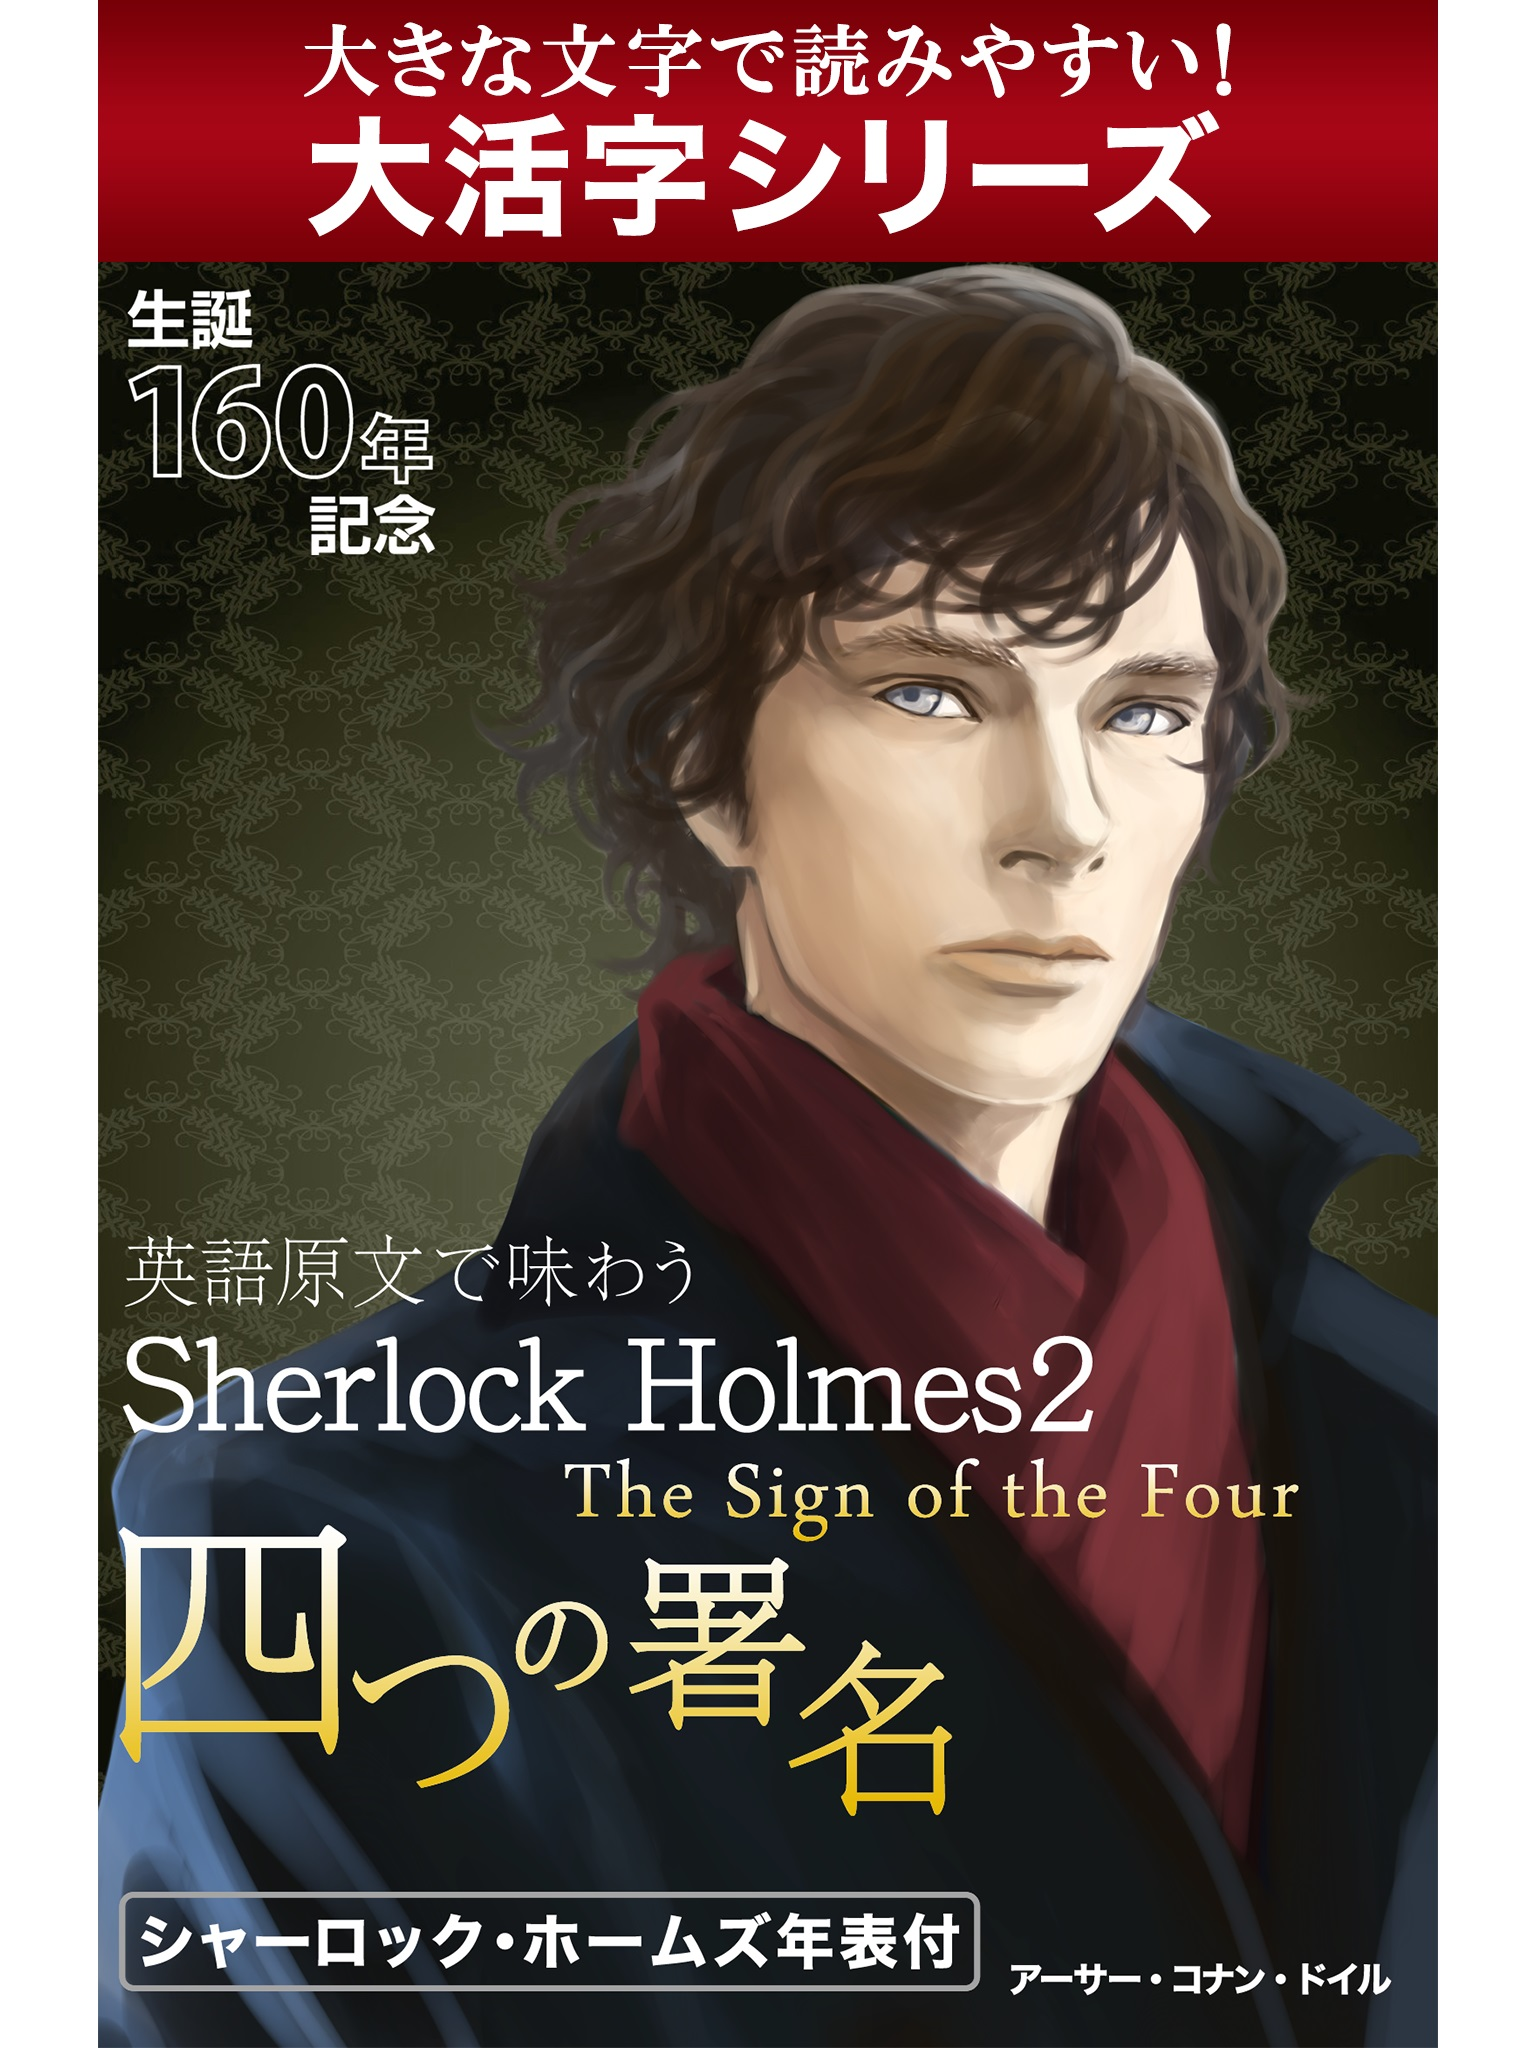 【android/kindle端末対応 大活字シリーズ】英語原文で味わうSherlock Holmes2 四つの署名/The Sign of the Four